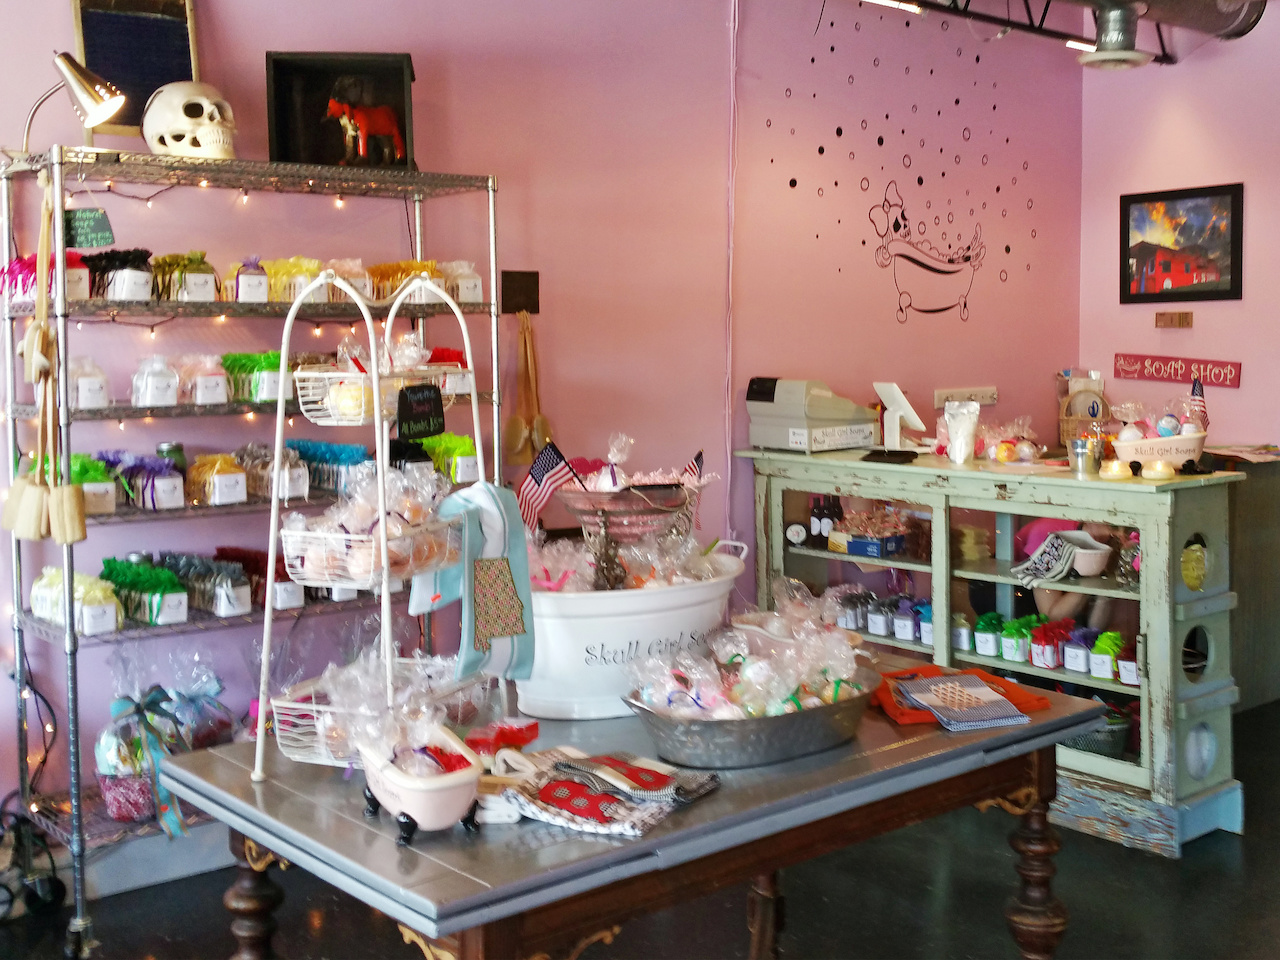 Skull Girl Soaps' shop is pretty in pink!